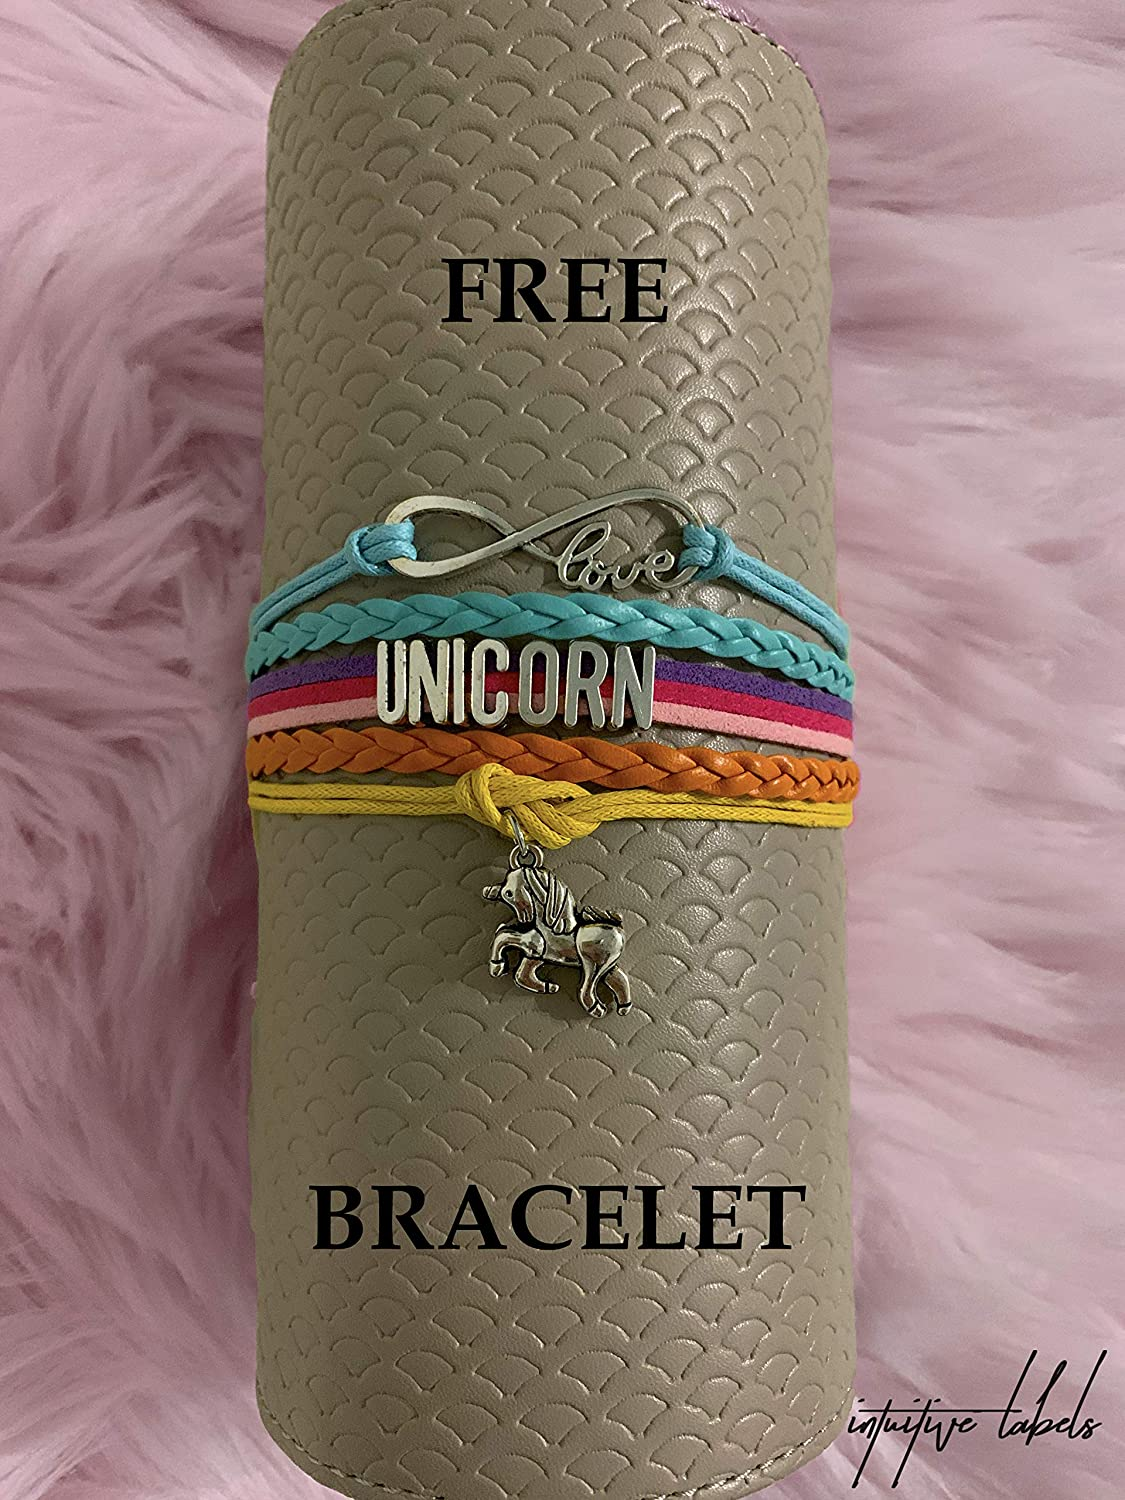 Intuitive Labels Unicorn Night Light with Free Unicorn Bracelet Bedside Lamp 7 Colors LED for Kids Children Desk Decor with Remote Amazing Gift Birthday Christmas Unicorn Lovers